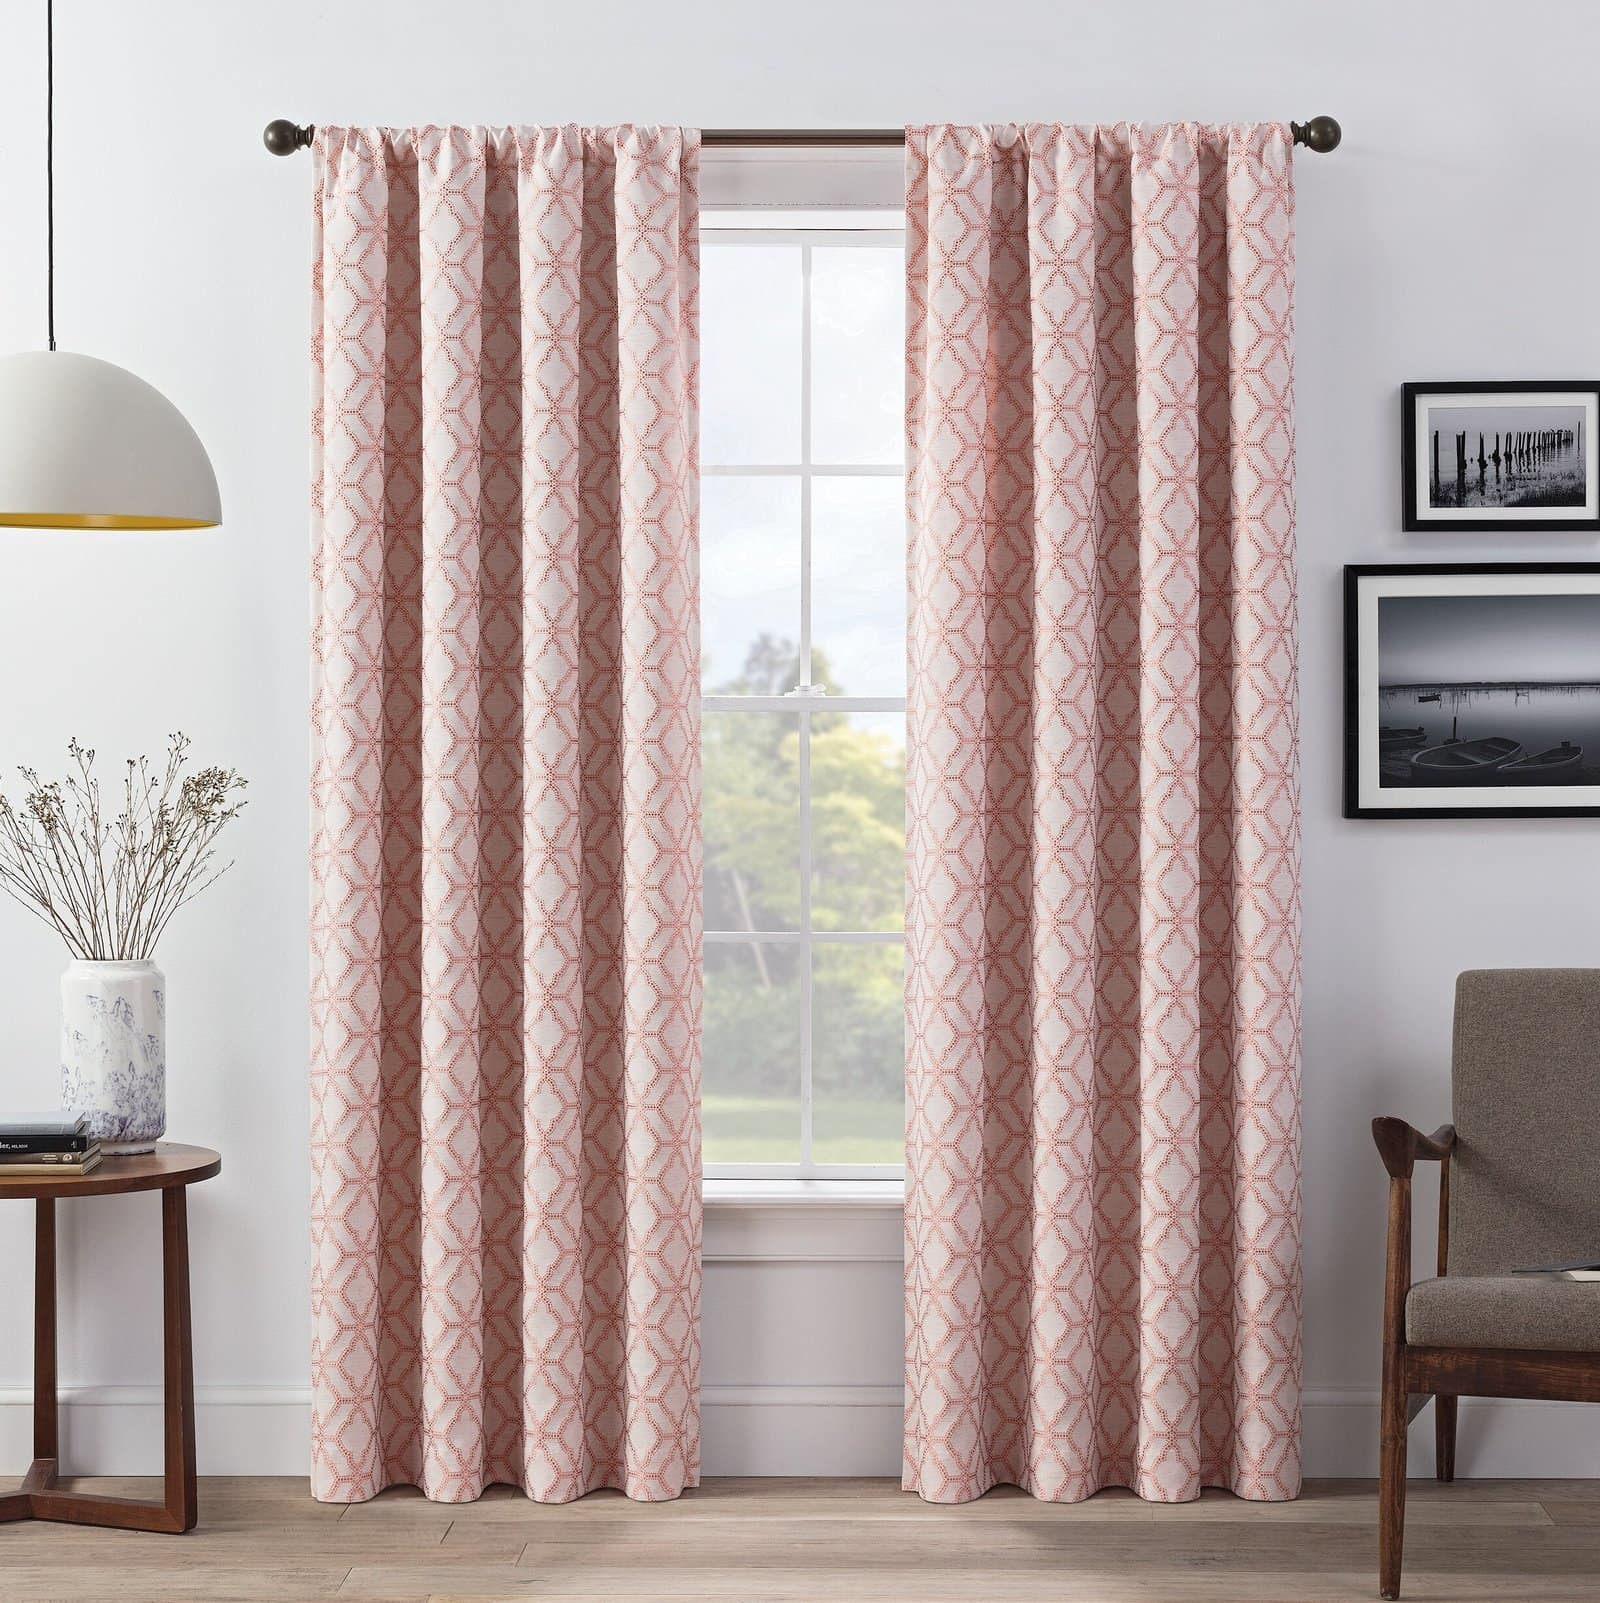 Coral and White Patterned Thermal Curtains